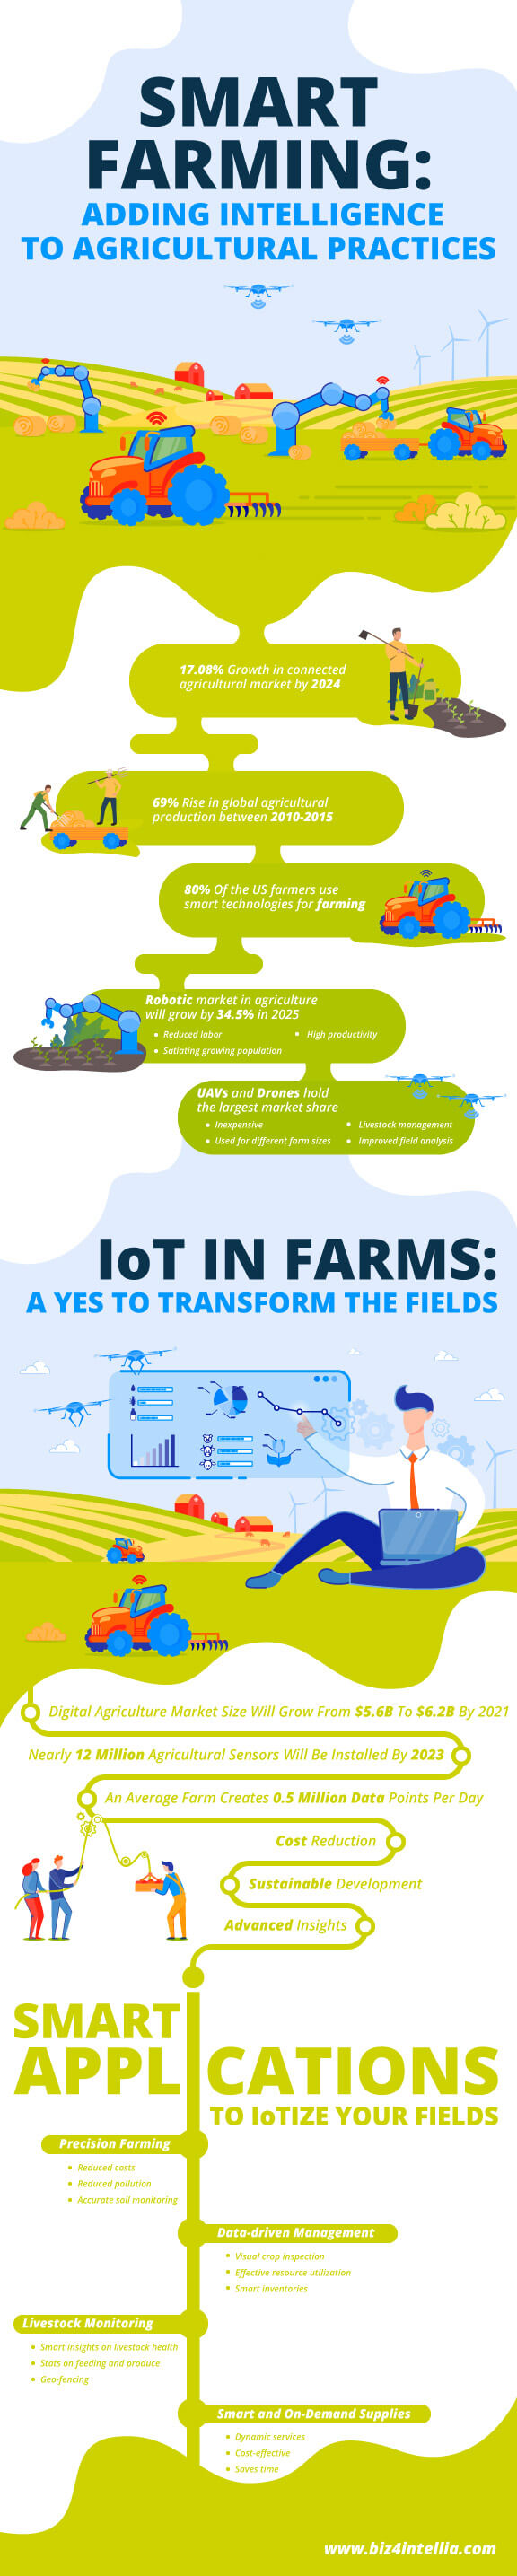 smart-farming-adding-intelligence-to-agricultural-practices